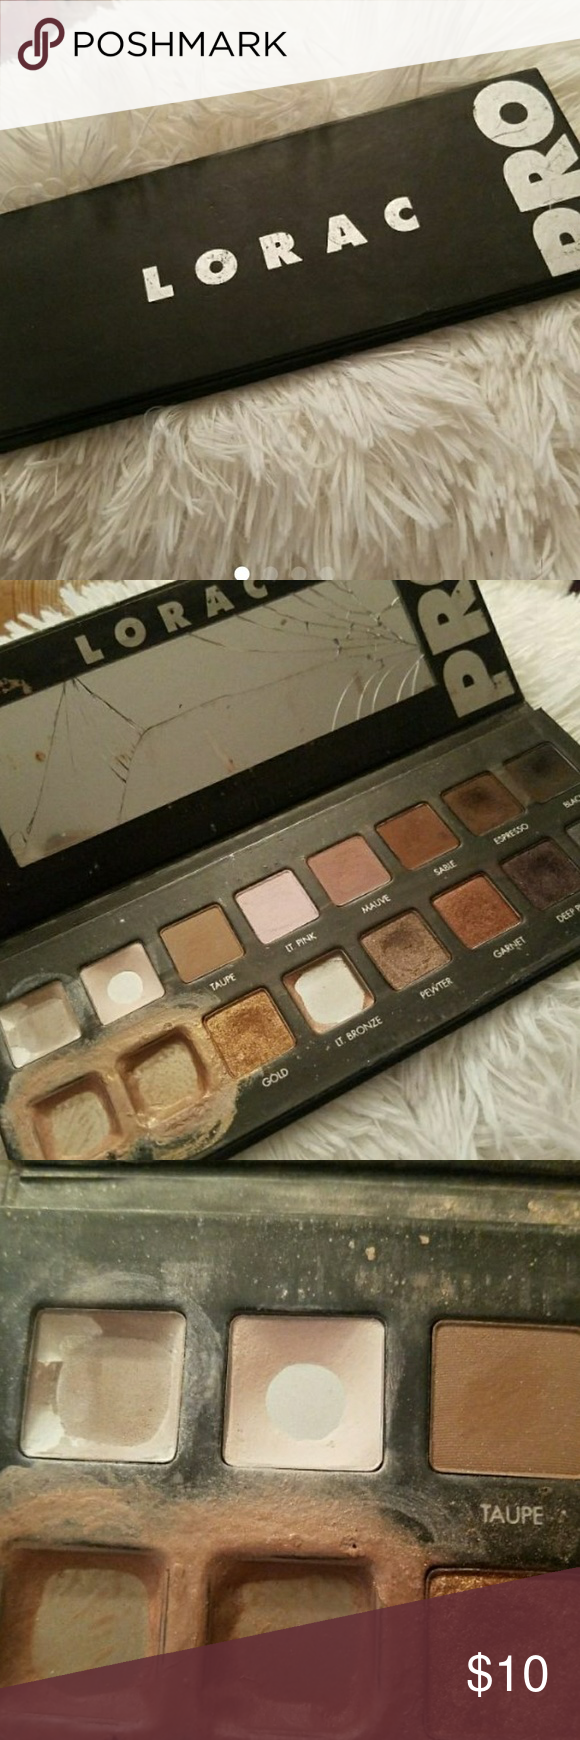 USED lorac pro pallet This pallete has been used, and abused. Lots of colors still available for those who are wanting to try this eye shadow. Other